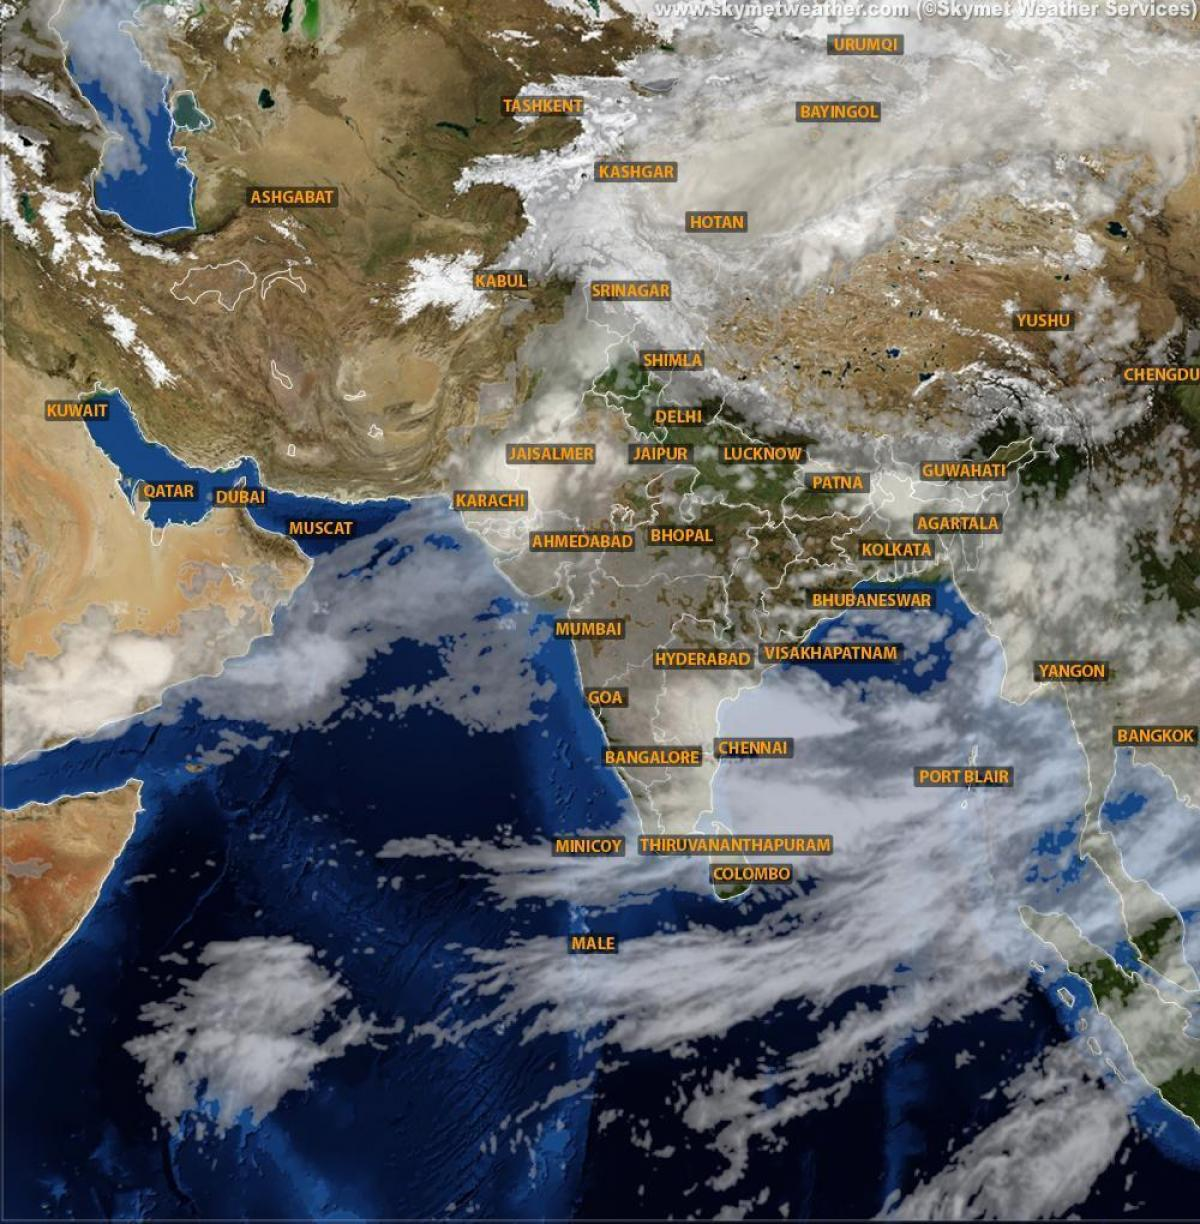 India Weather Satellite Map India weather satellite map   India satellite weather map